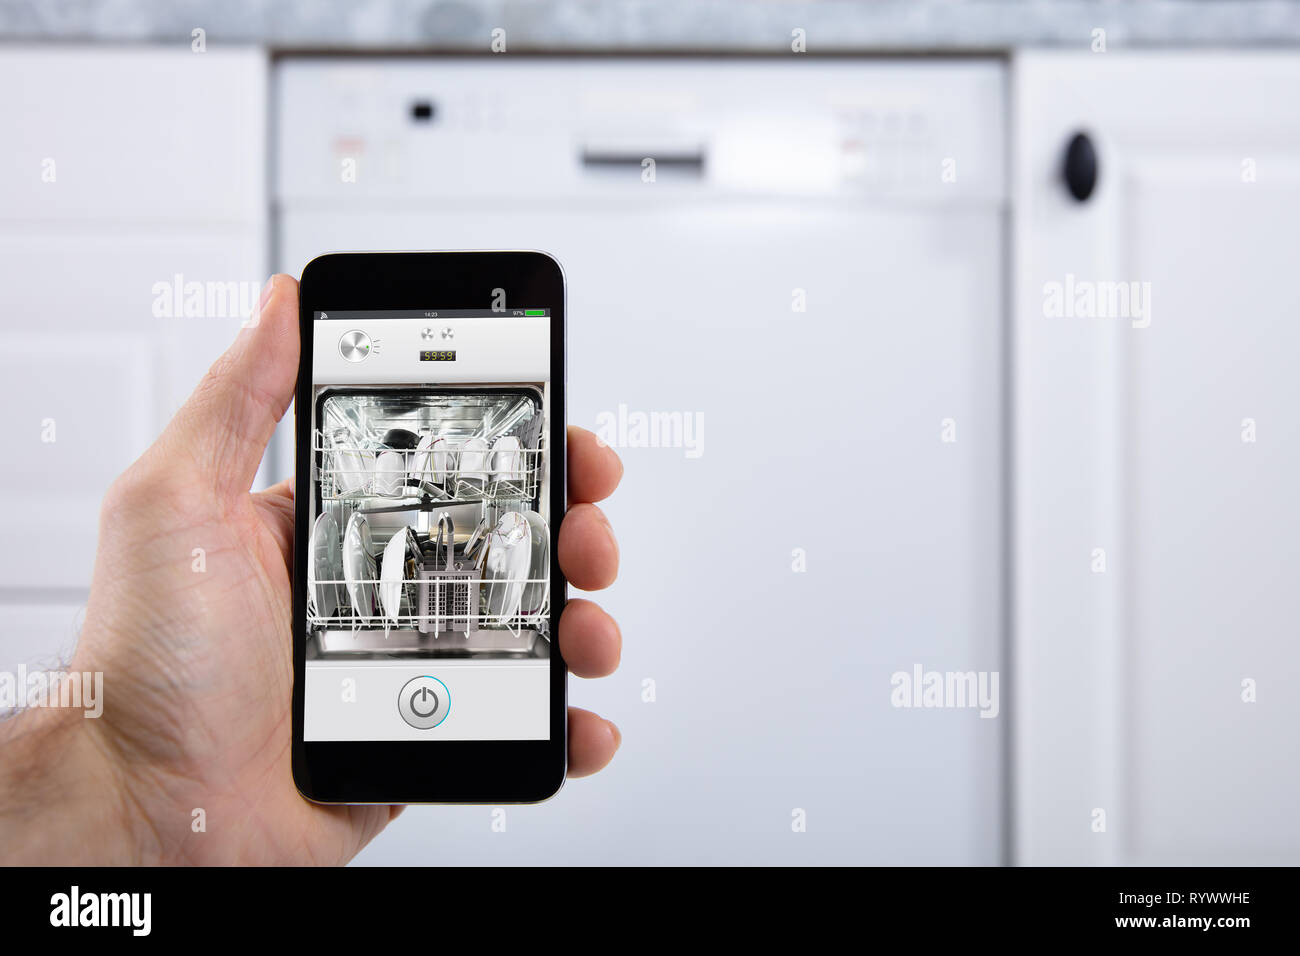 Close-up Of A Person's Hand Operating Dishwasher With Smartphone - Stock Image